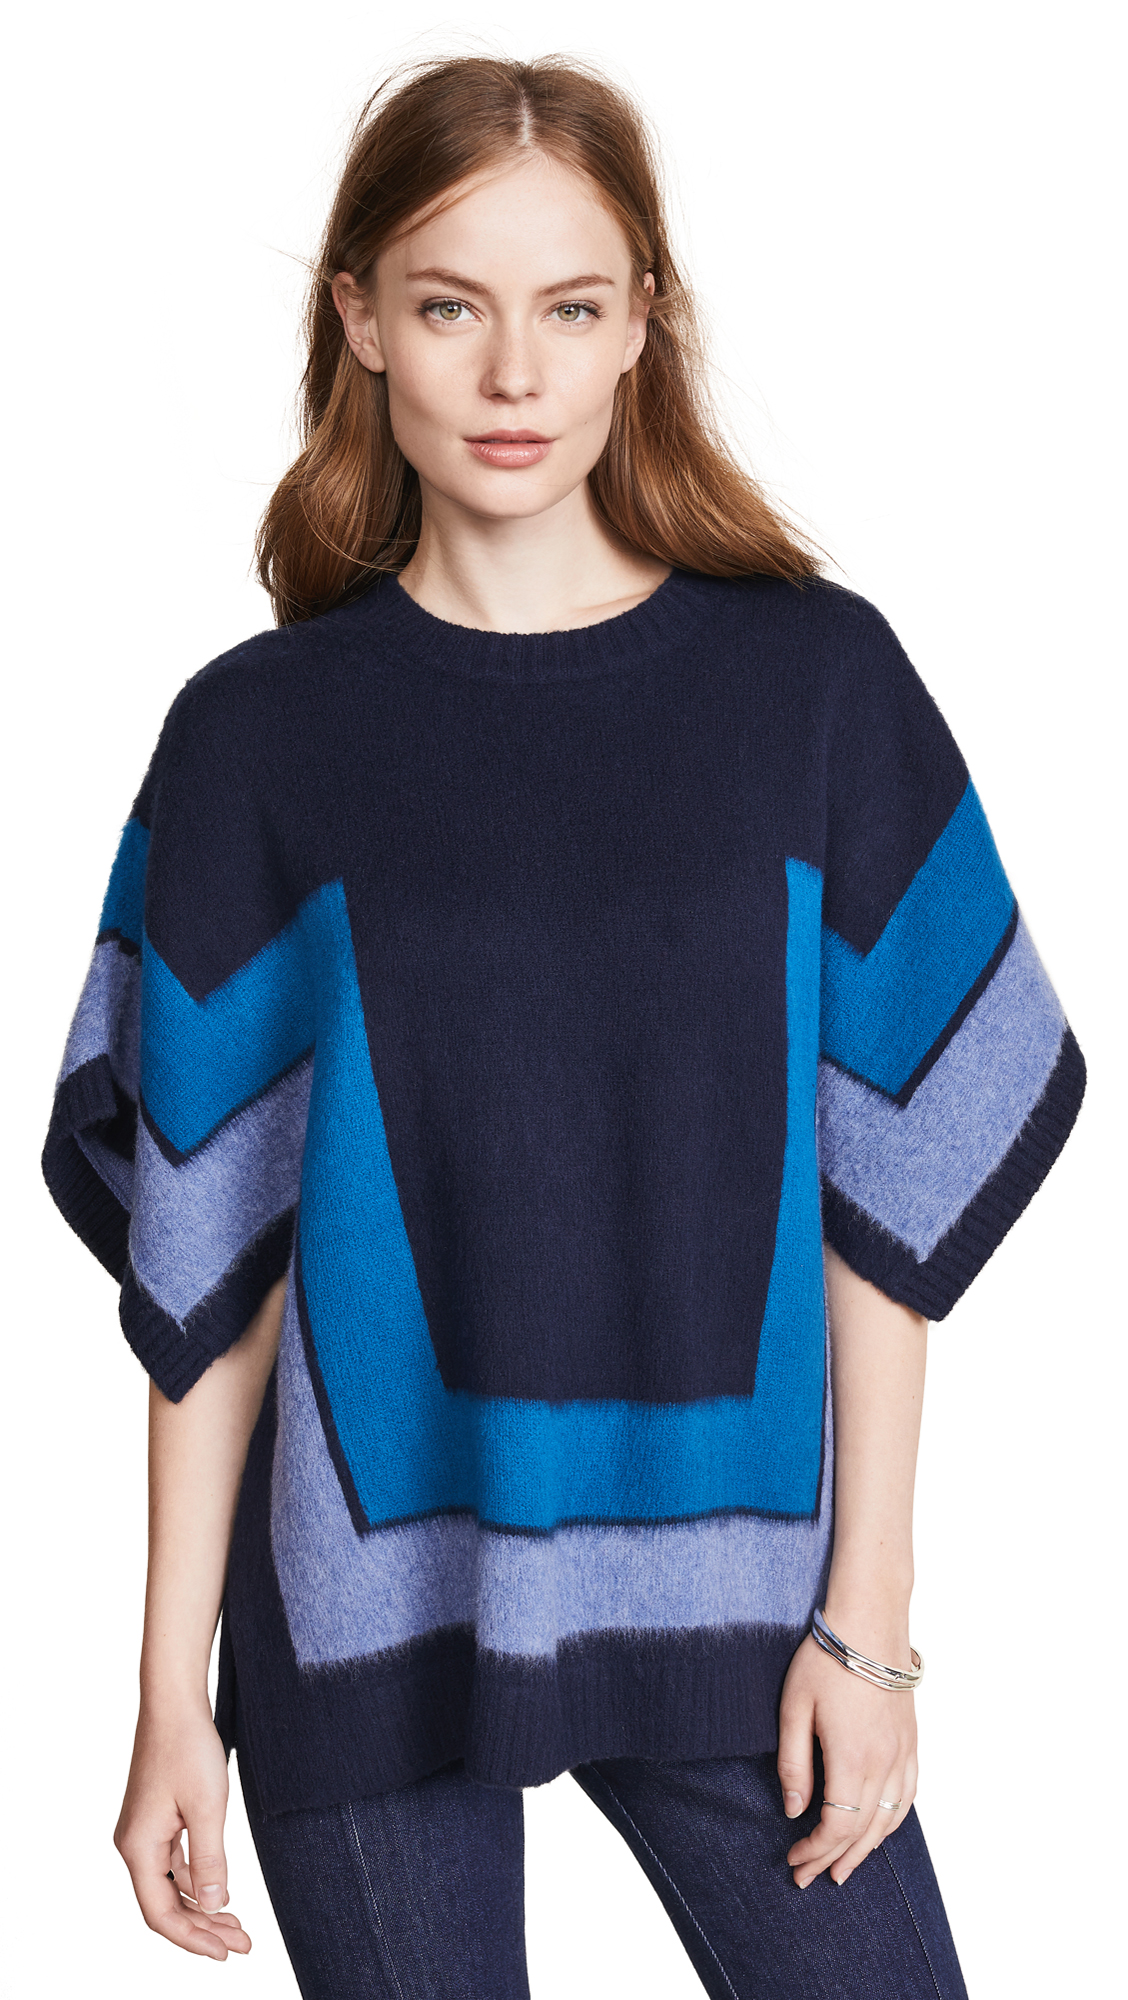 Derek Lam 10 Crosby Blanket Sweater In Blue Multi